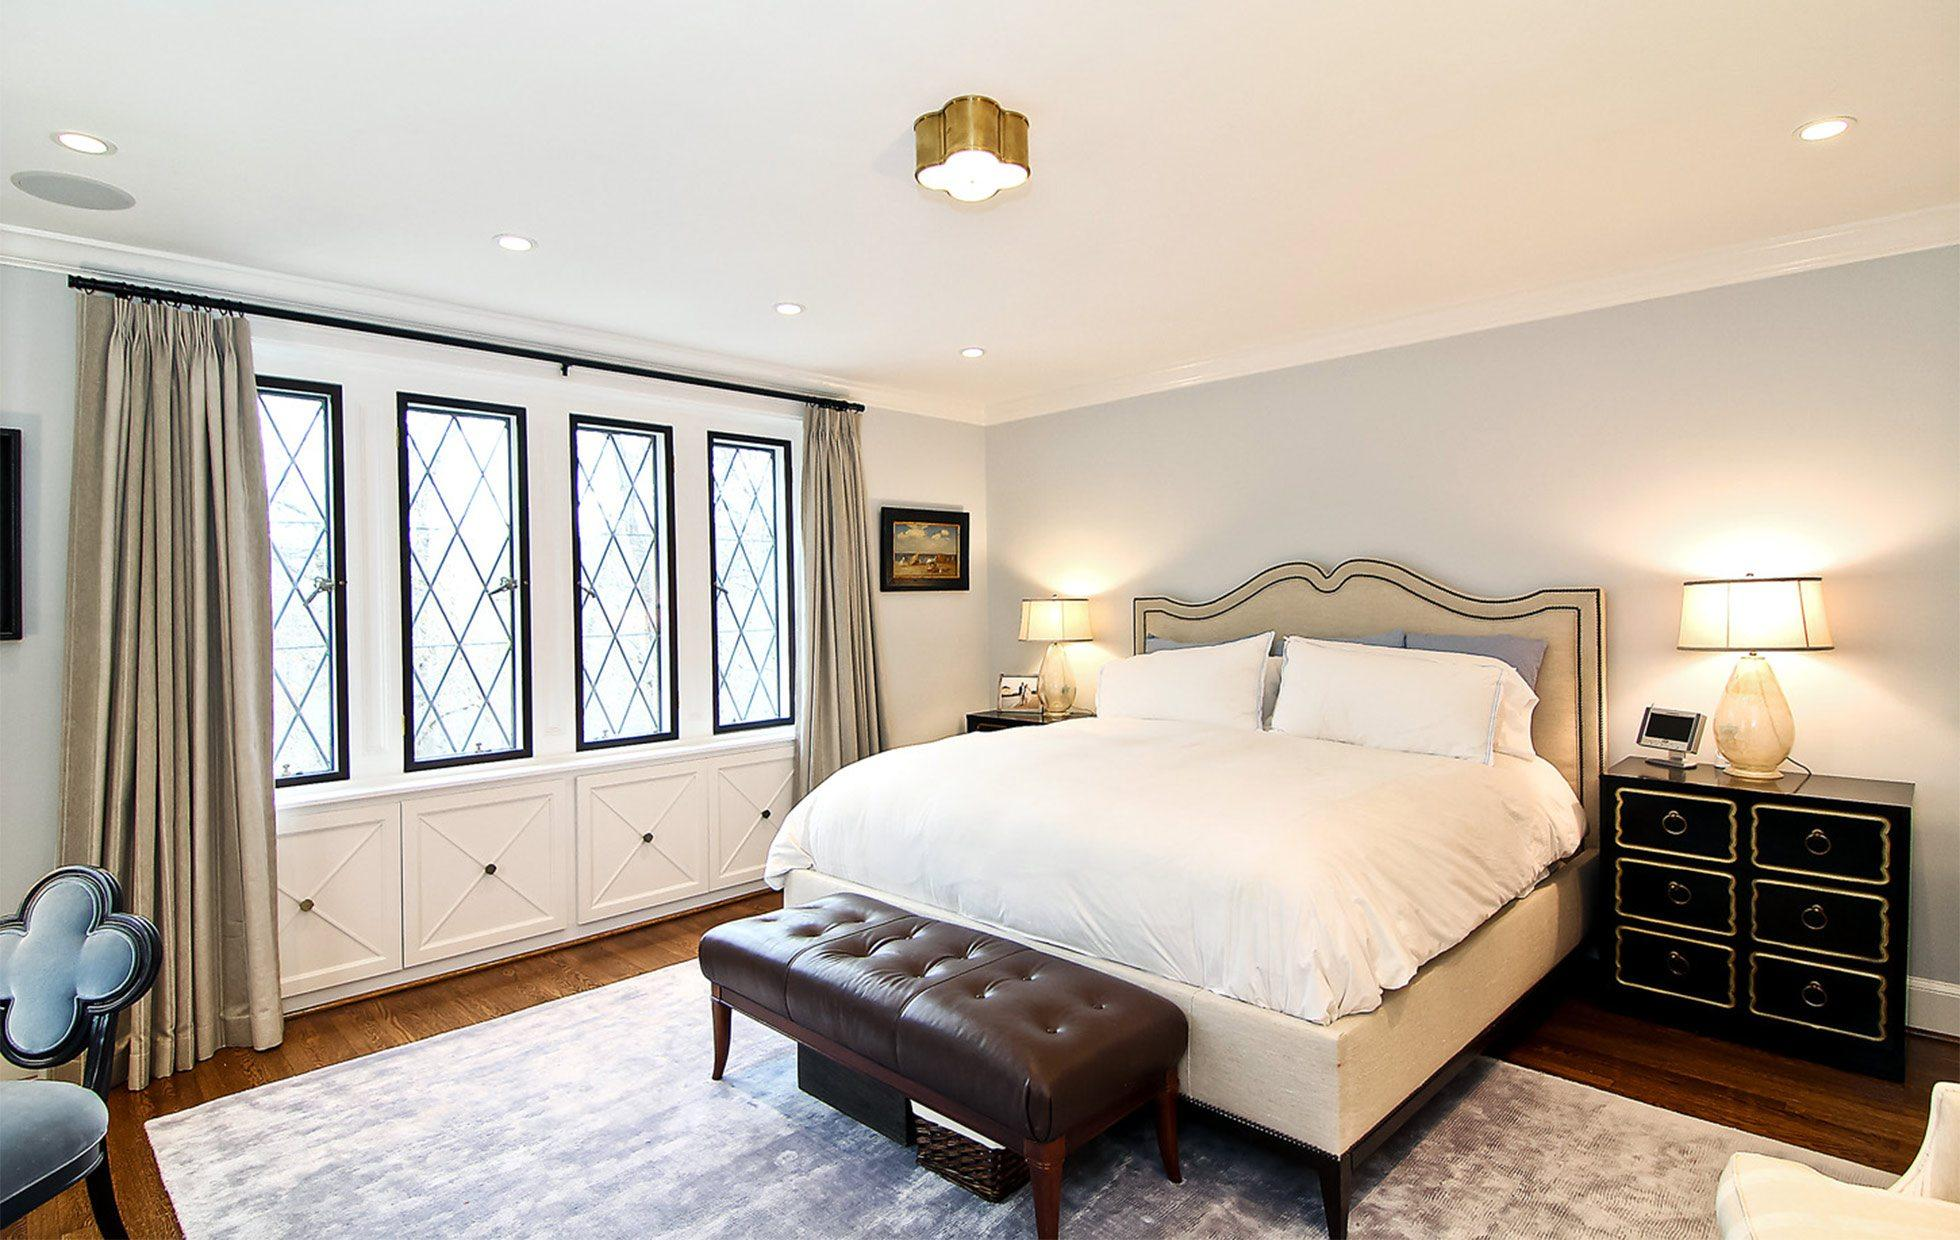 58820021386822446-Belmont-Road-NW-Washington-DC-Obamas-New-Home-Master-Bedroom